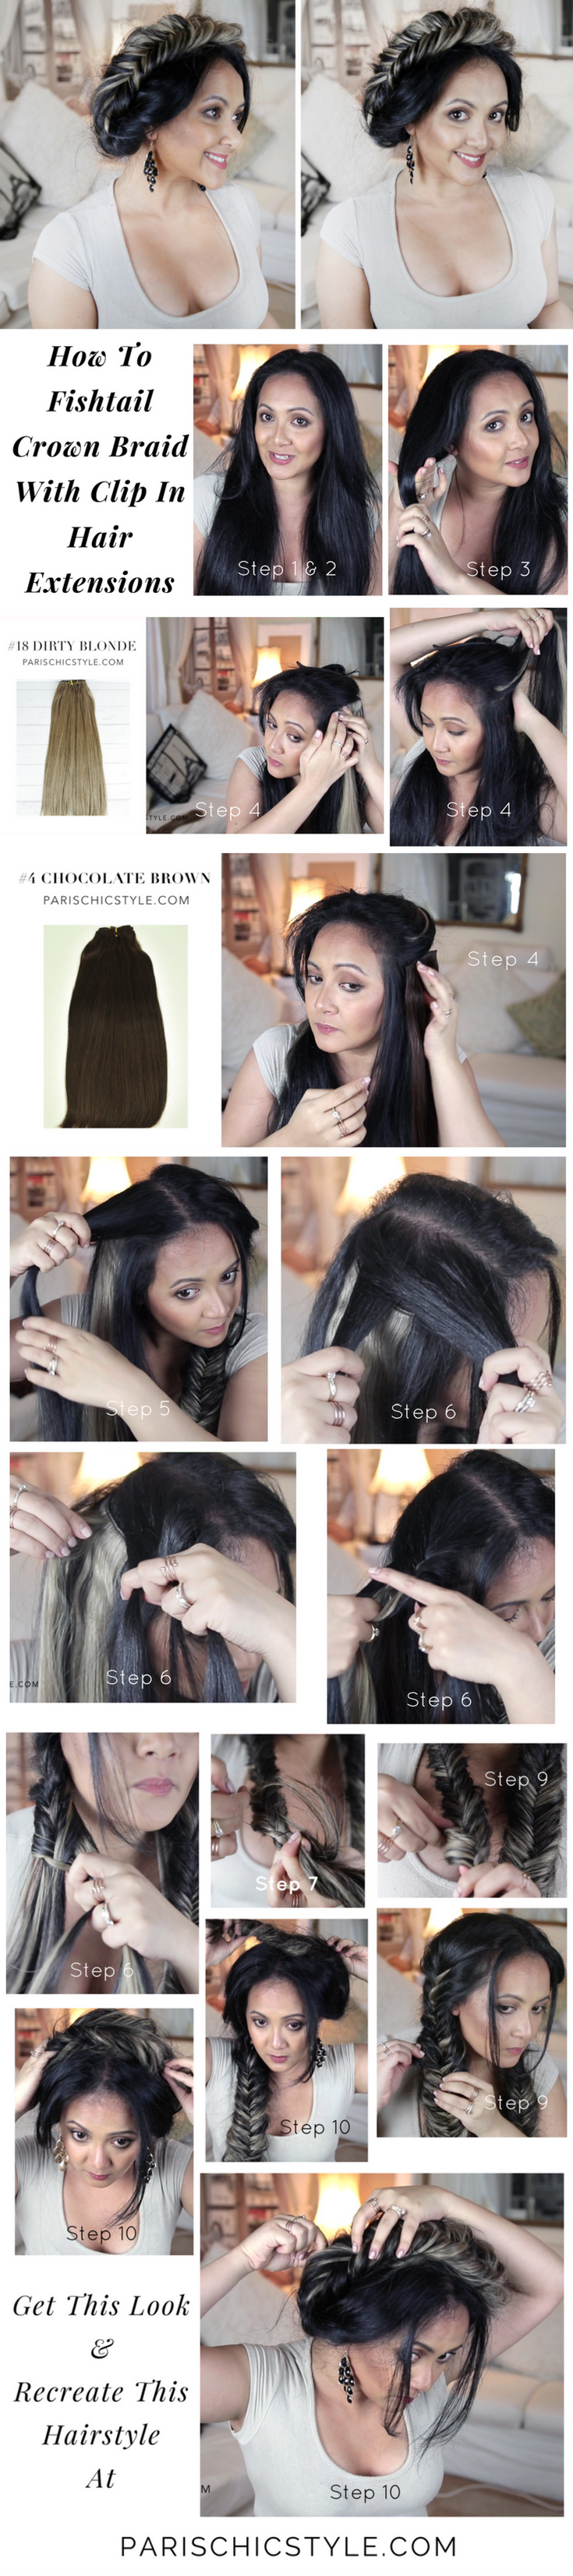 how-to-fishtail-crown-braid-with-paris-chic-style-clip-in-hair-extensions-pinterest-instagram-blog-ecommerce-2